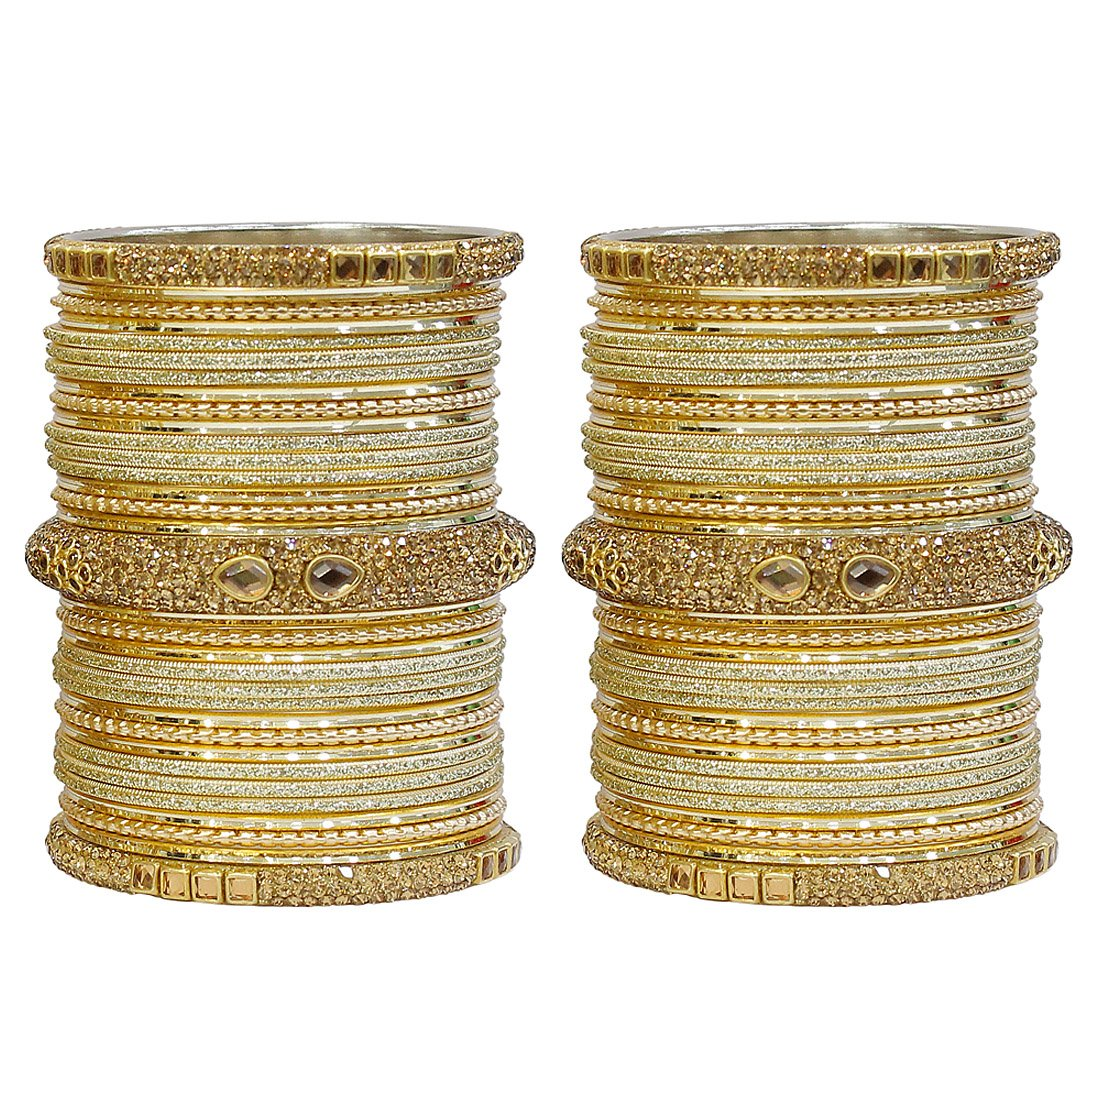 MUCH-MORE Marvelous 18 Pieces of Multicolor Bangles Set with Dashing Kade Traditional Indian Partywear Jewelry for Women & Girls (Cream, 2.8)